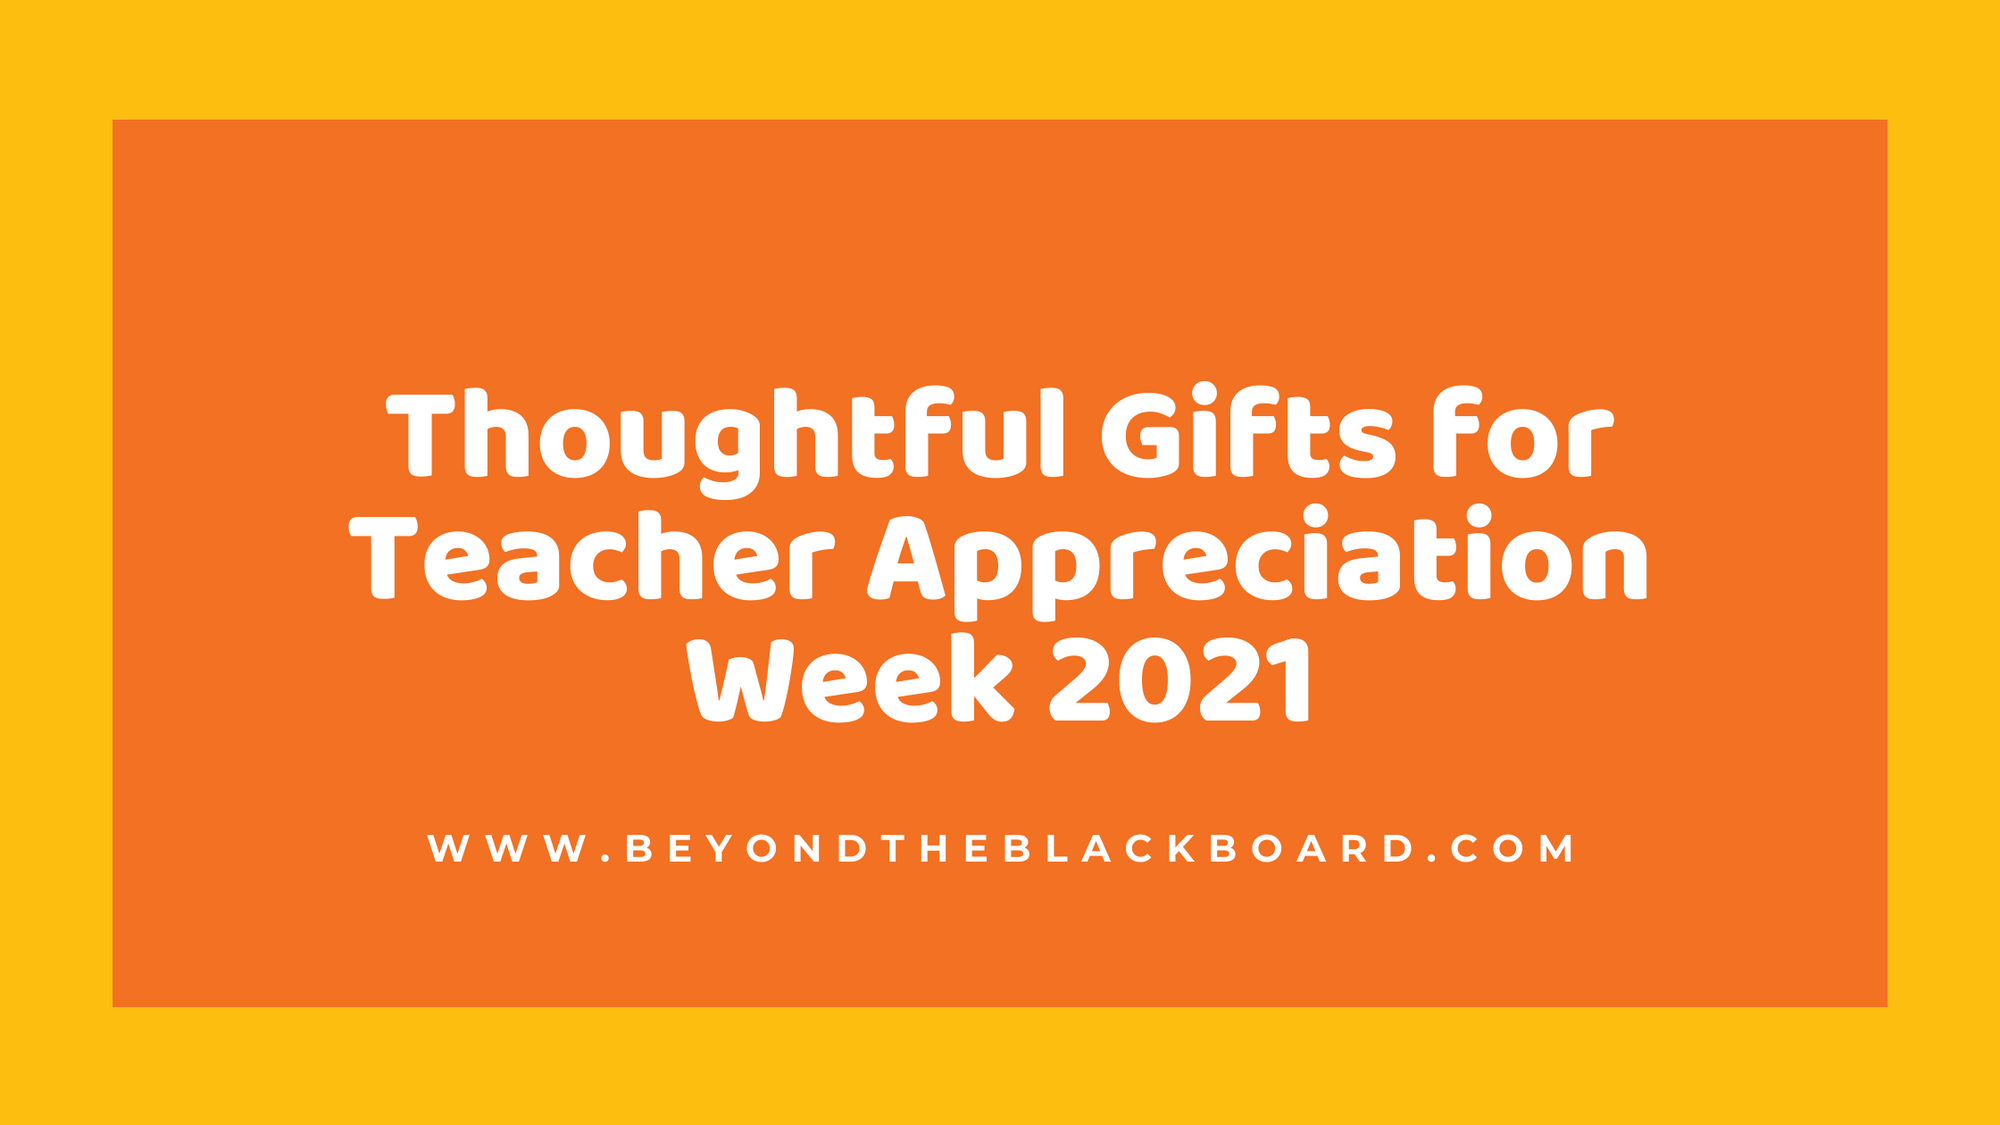 Thoughtful Gifts for Teacher Appreciation Week 2021; www.beyondtheblackboard.com